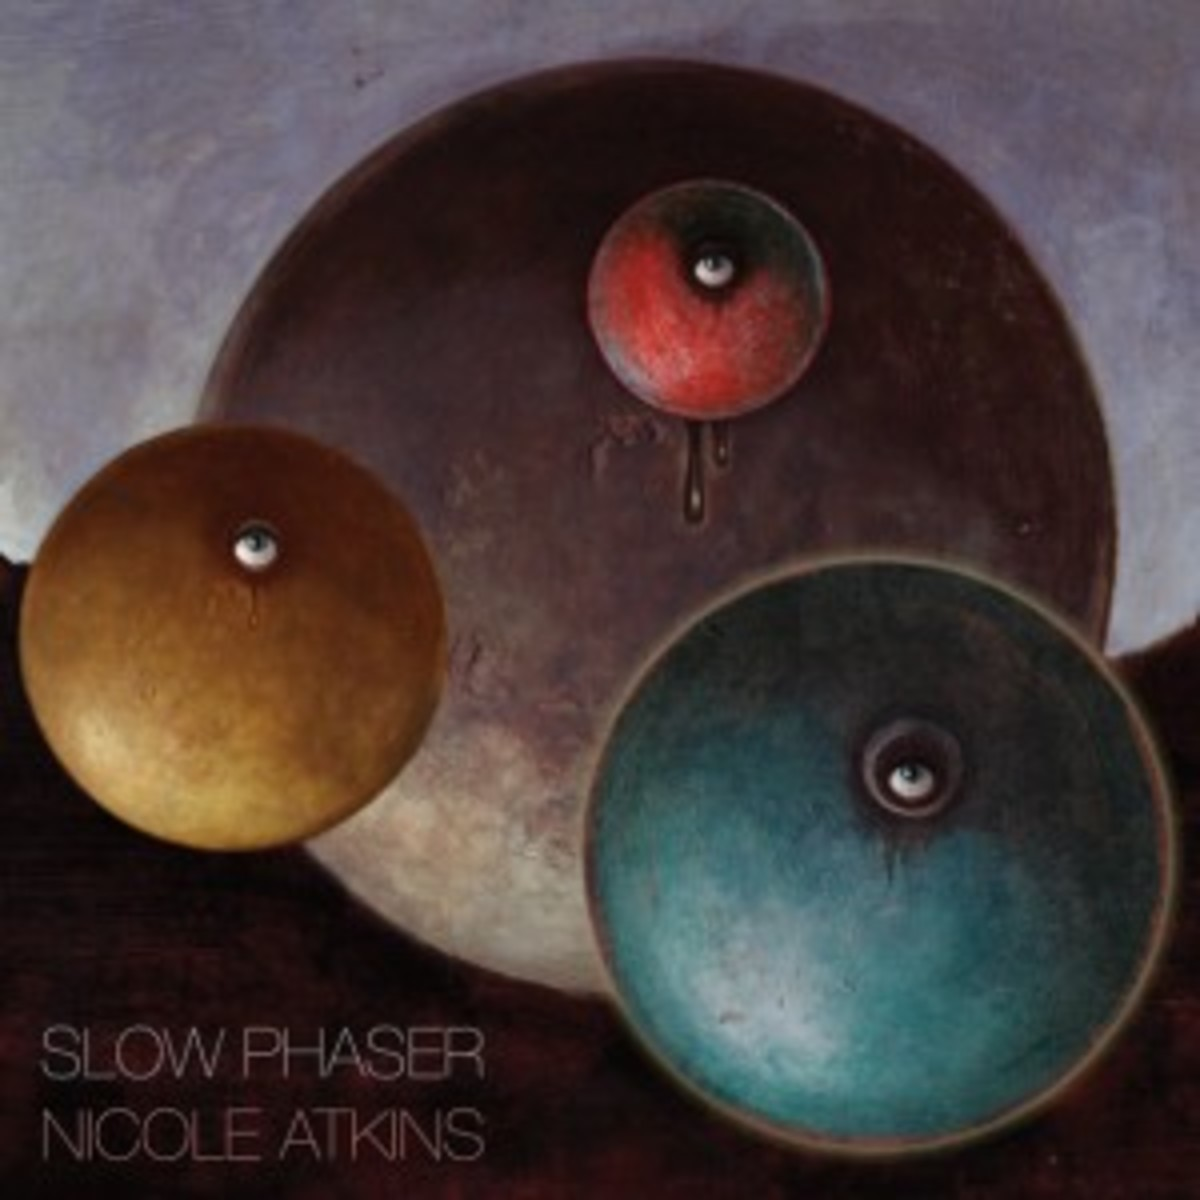 Slow Phaser, Nicole Atkins' third album, is a feast of musical styles as well as a stunning look into the dark side of the human soul.